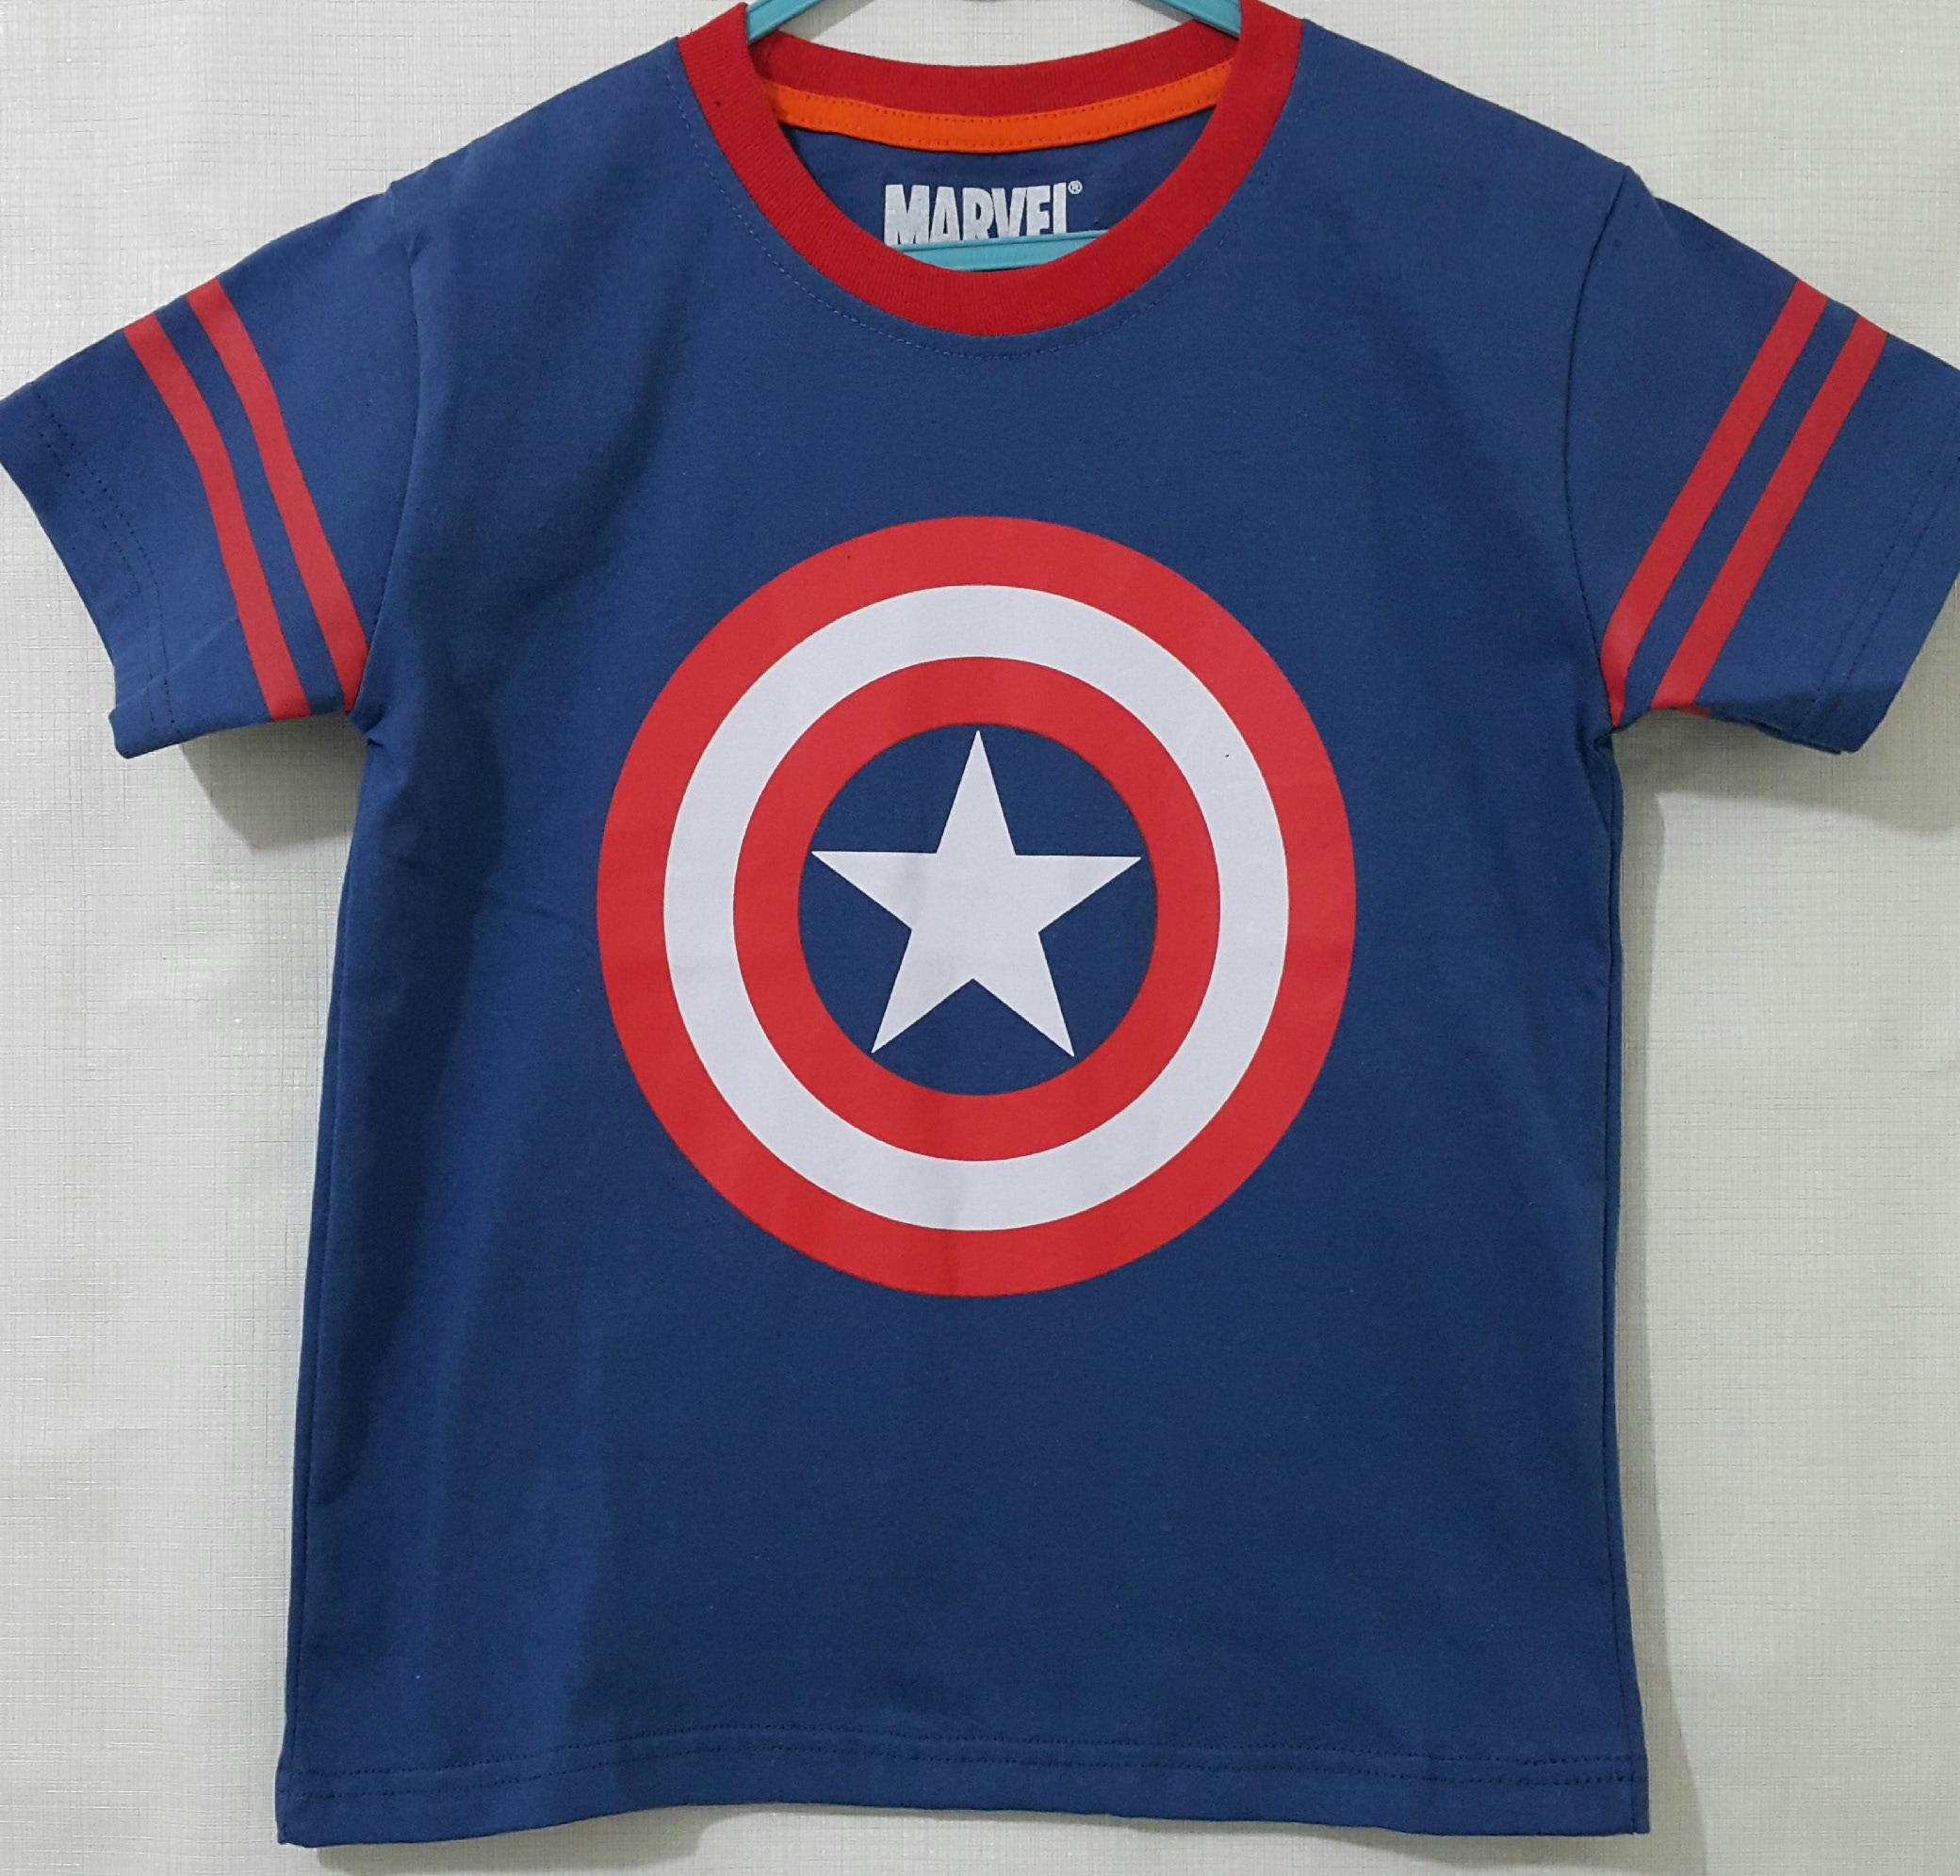 kaos anak captain america logo marvel16  GrosirEceran